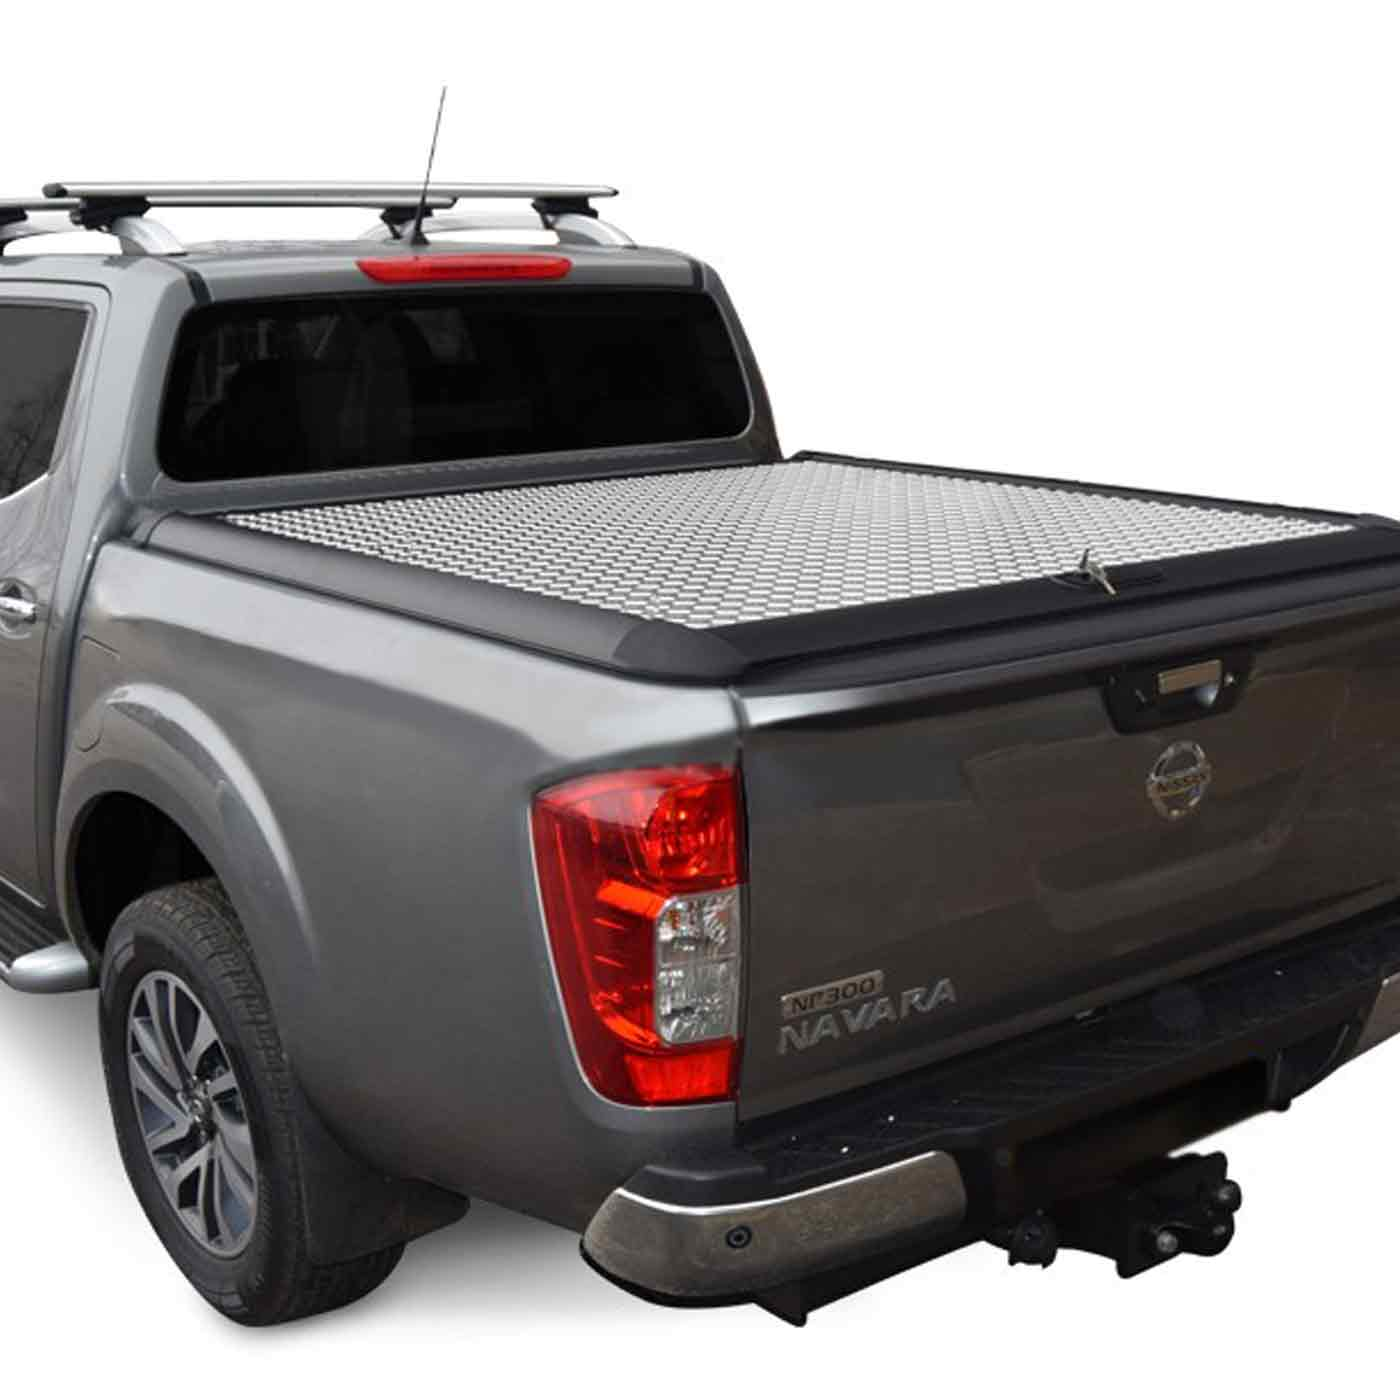 mountain top alu 2 laderaumdeckel nissan navara np300 ab 2015. Black Bedroom Furniture Sets. Home Design Ideas